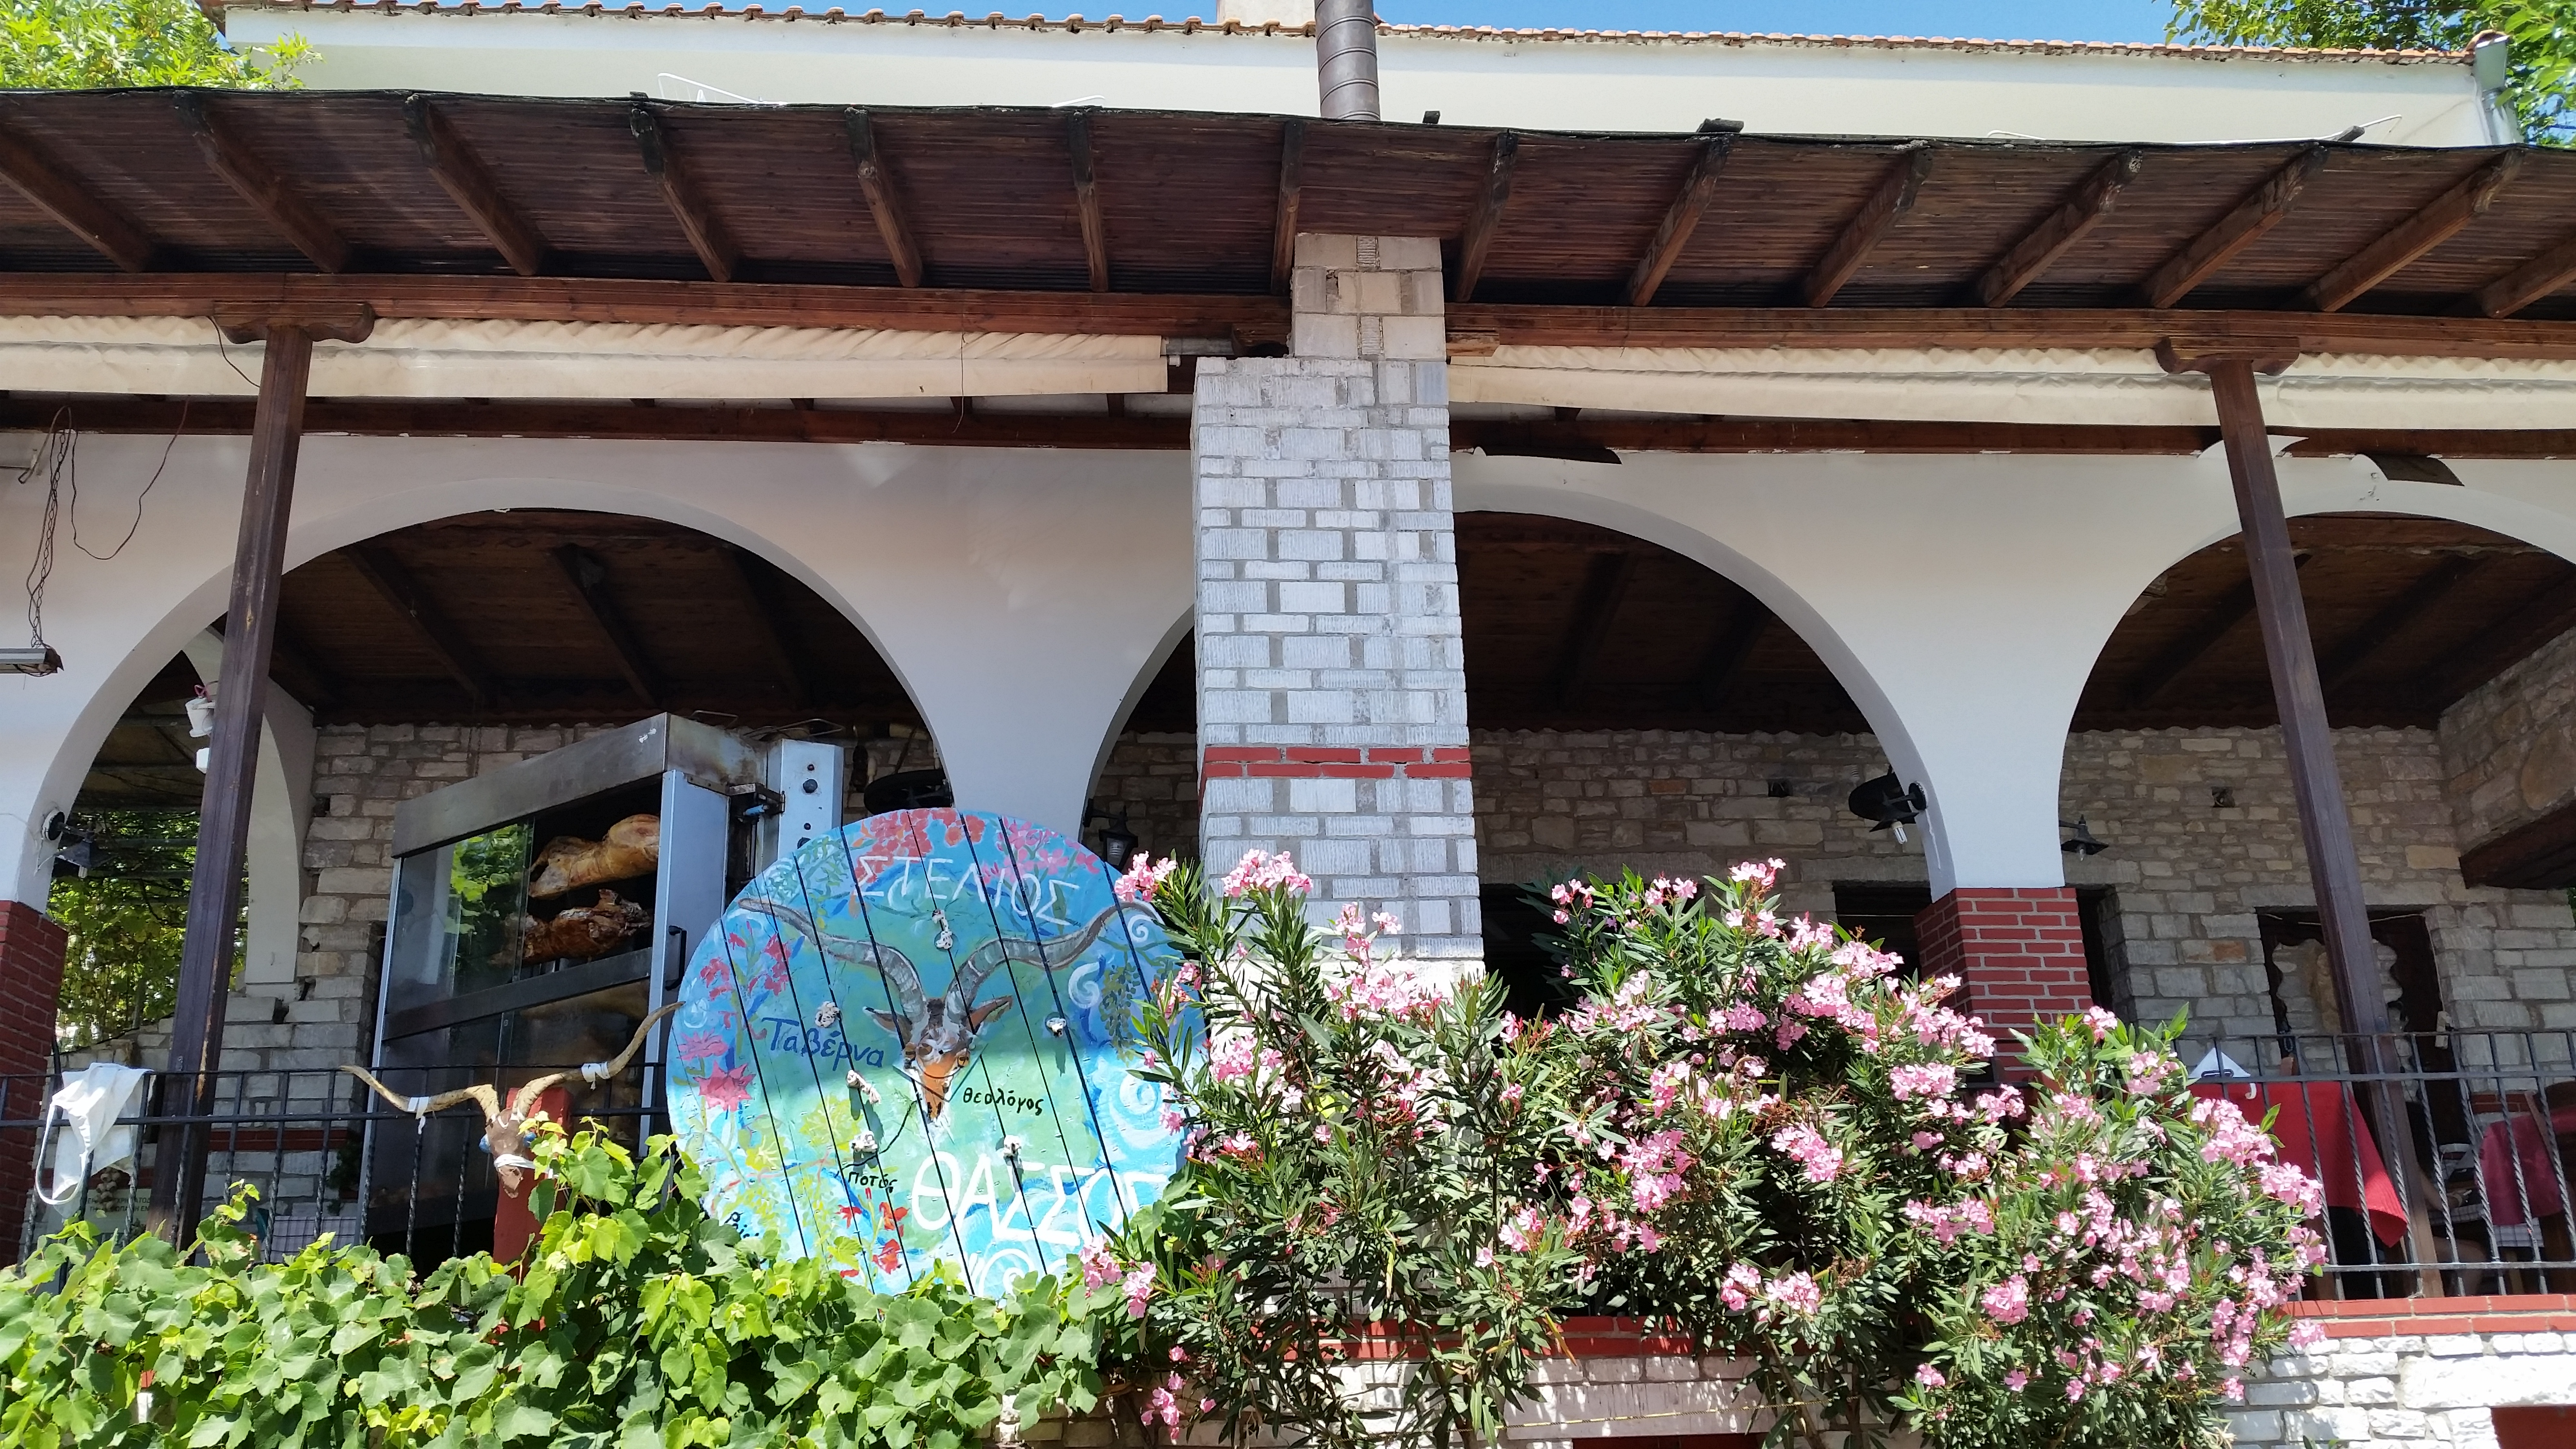 Stelios tavern from the street, Thassos by placescases